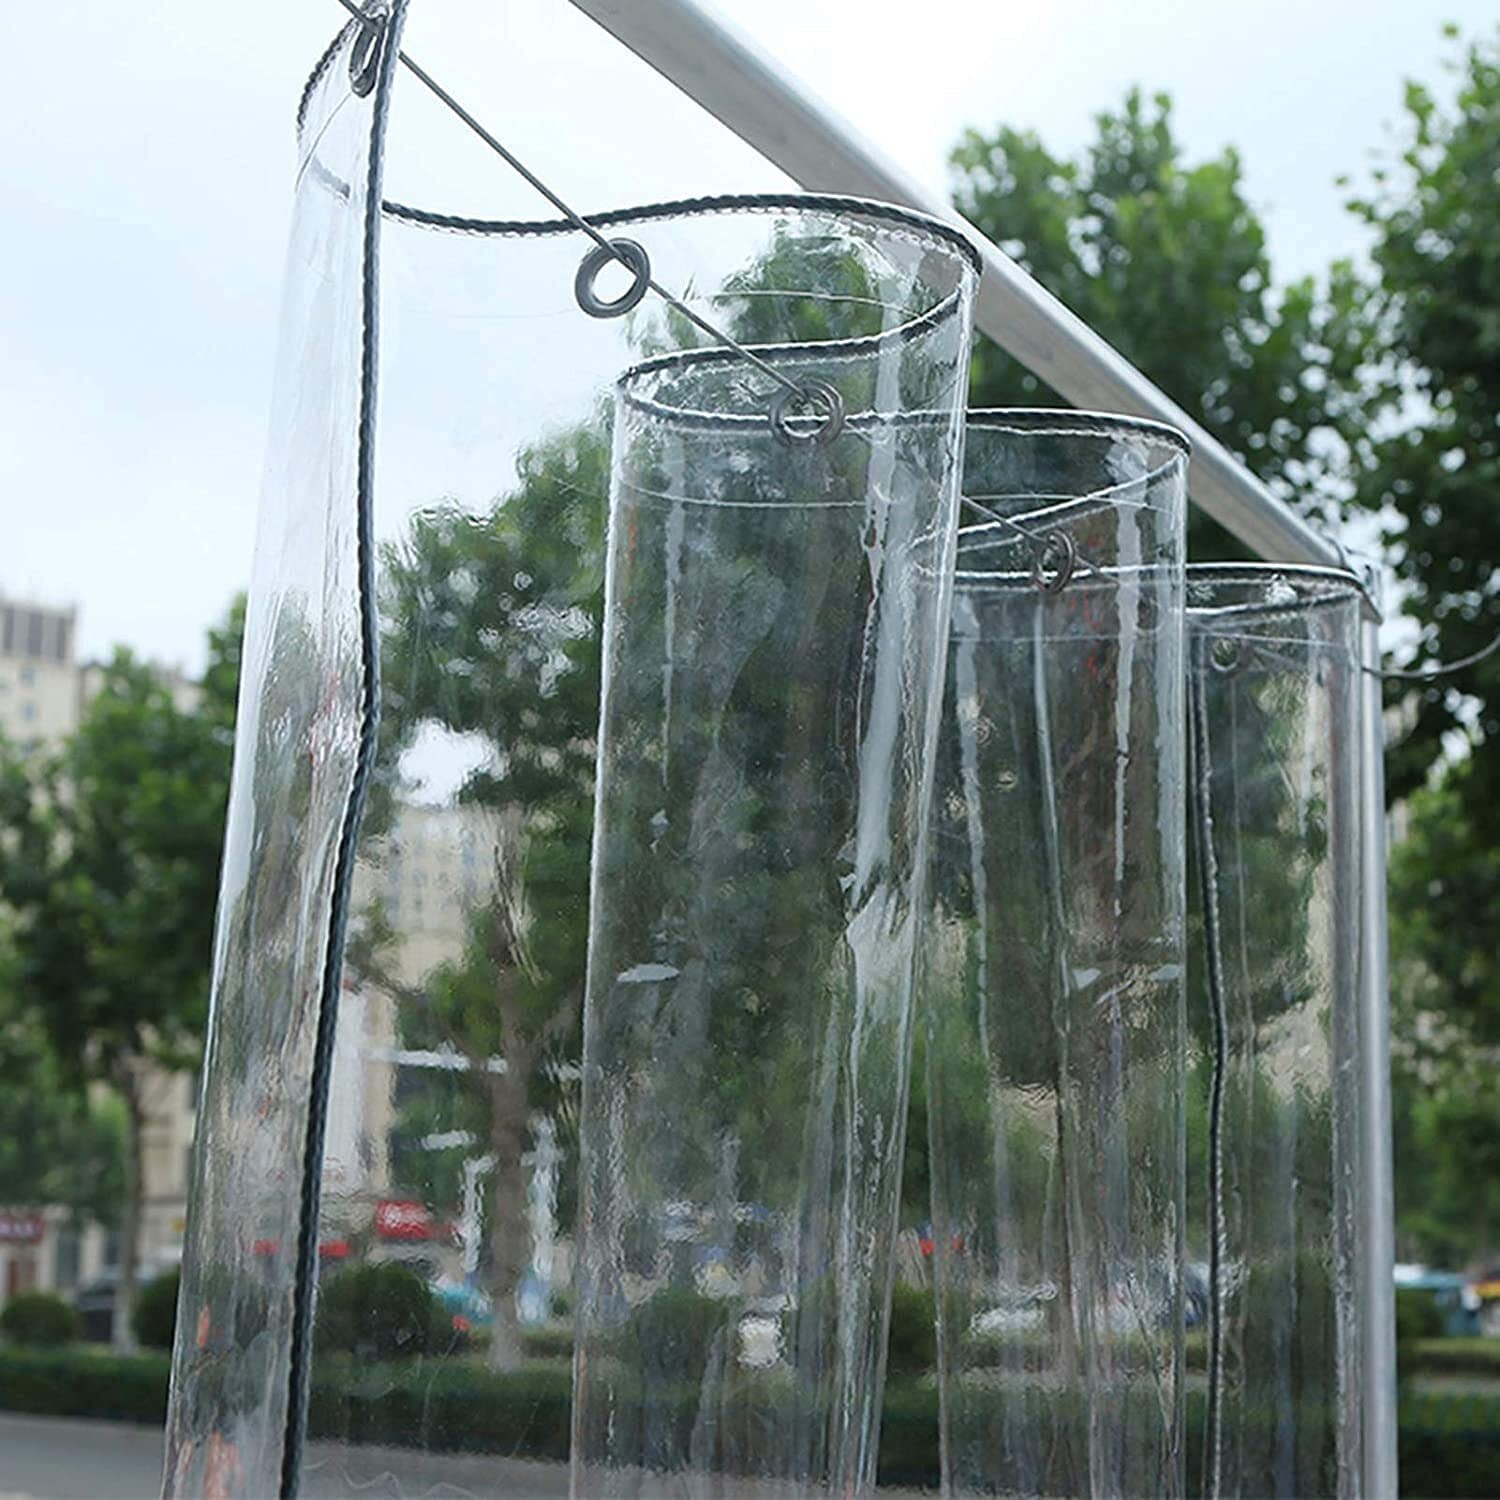 Transparent PVC Waterproof Fabric Clear Cover Outdoor Fixed price for sale Tarpaulin San Antonio Mall